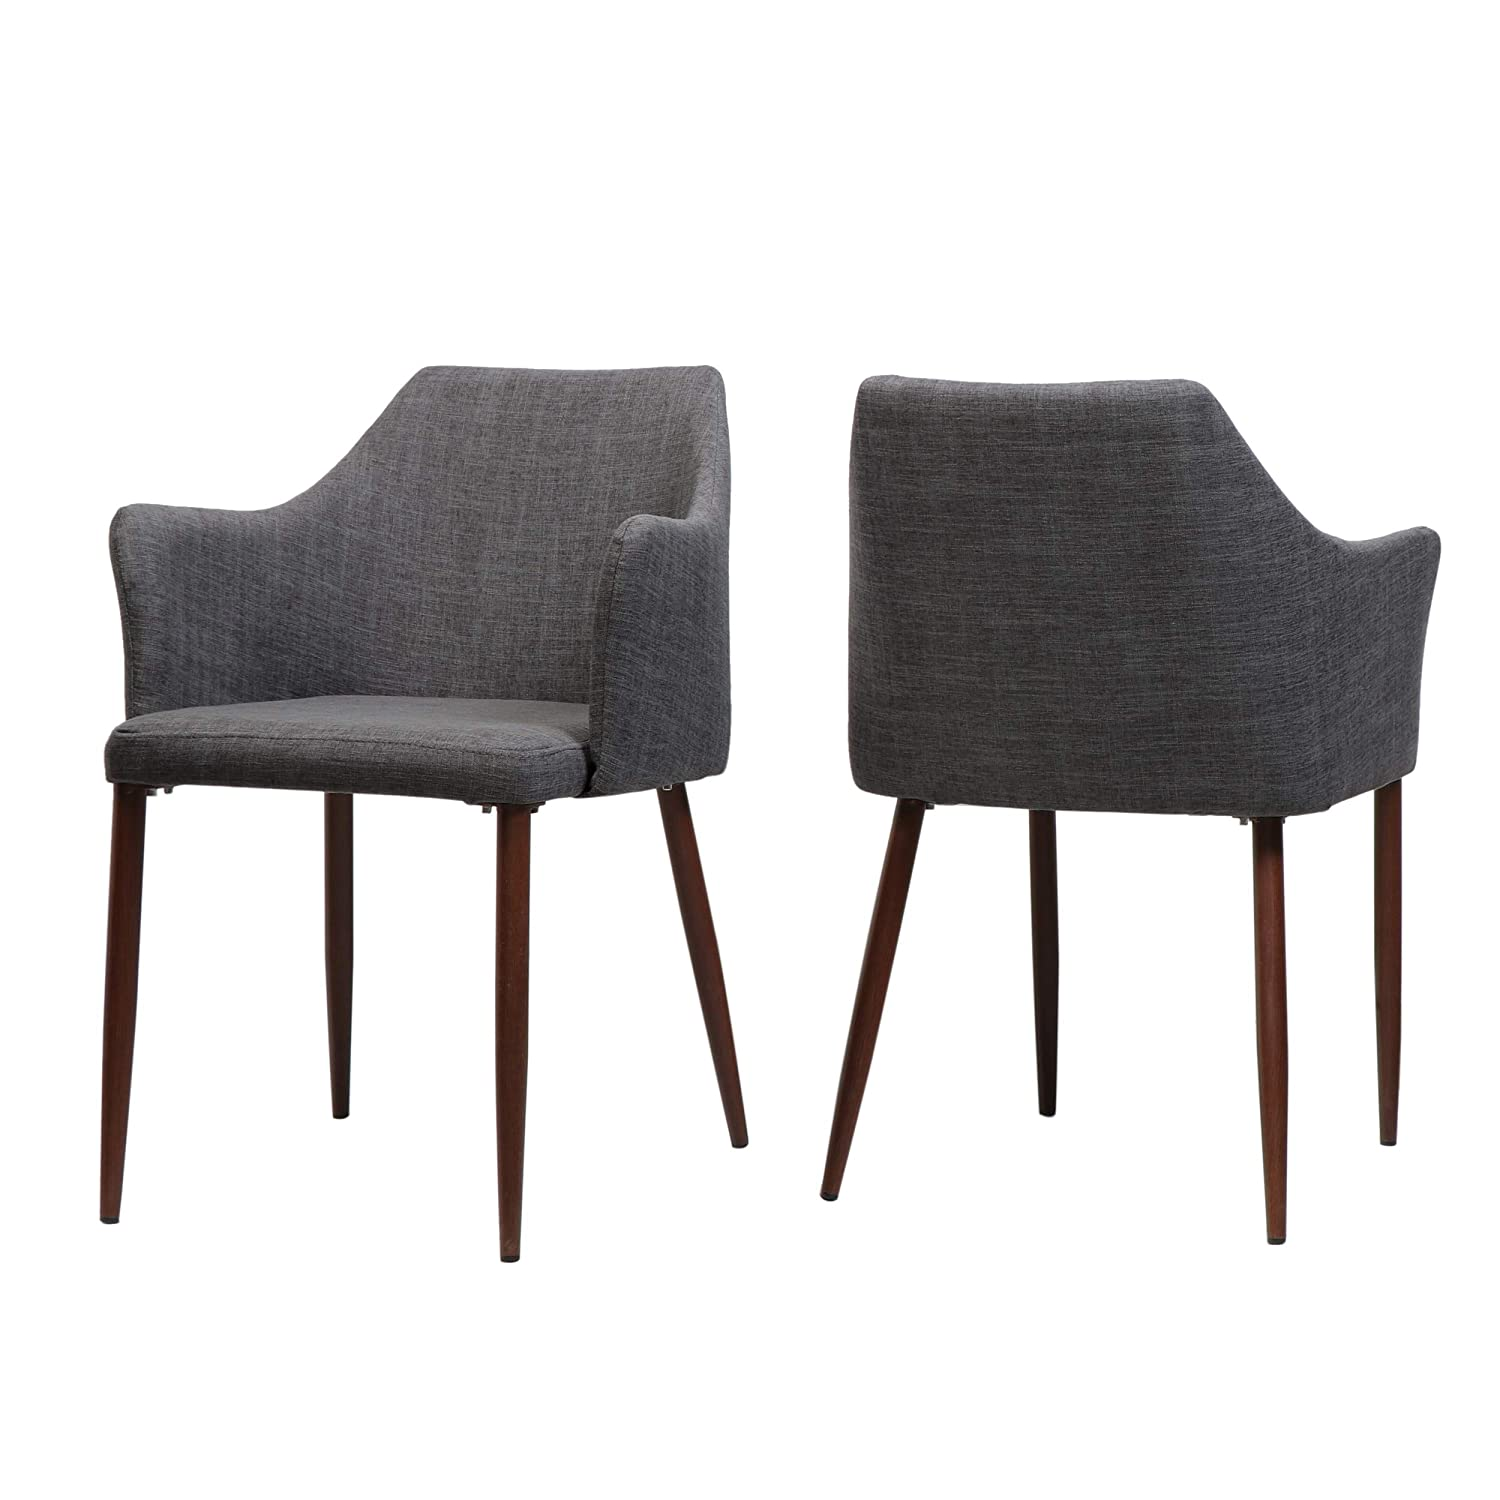 Nande Mid Century Light Grey Fabric Dining Chairs with Dark Walnut Wood Finished Legs (Set of 2)